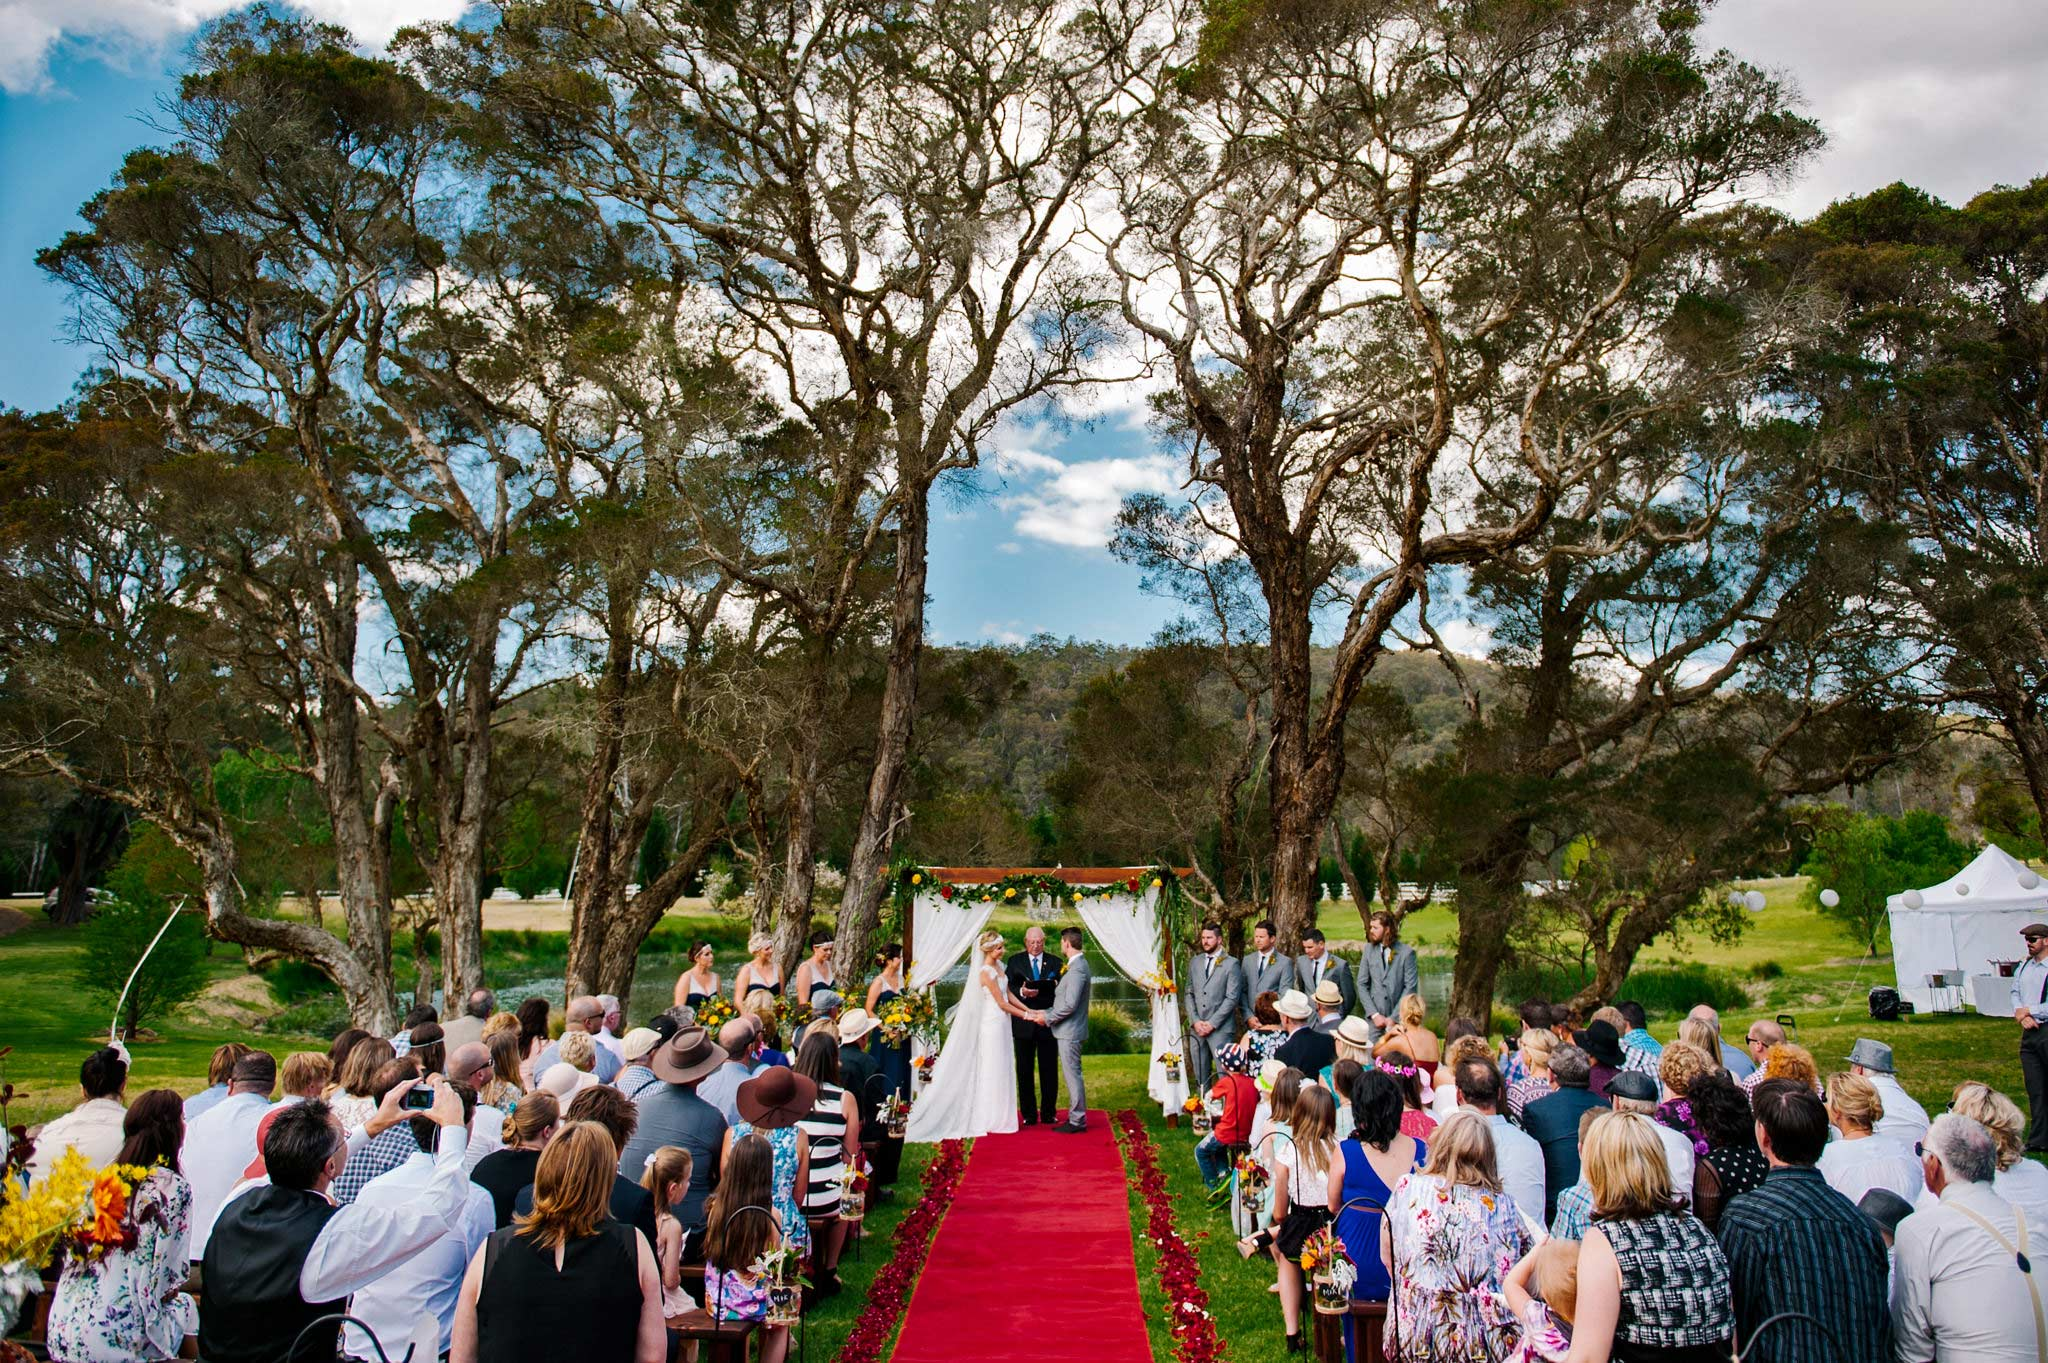 Wedding ceremony under large trees at Redwood Park Wollombi